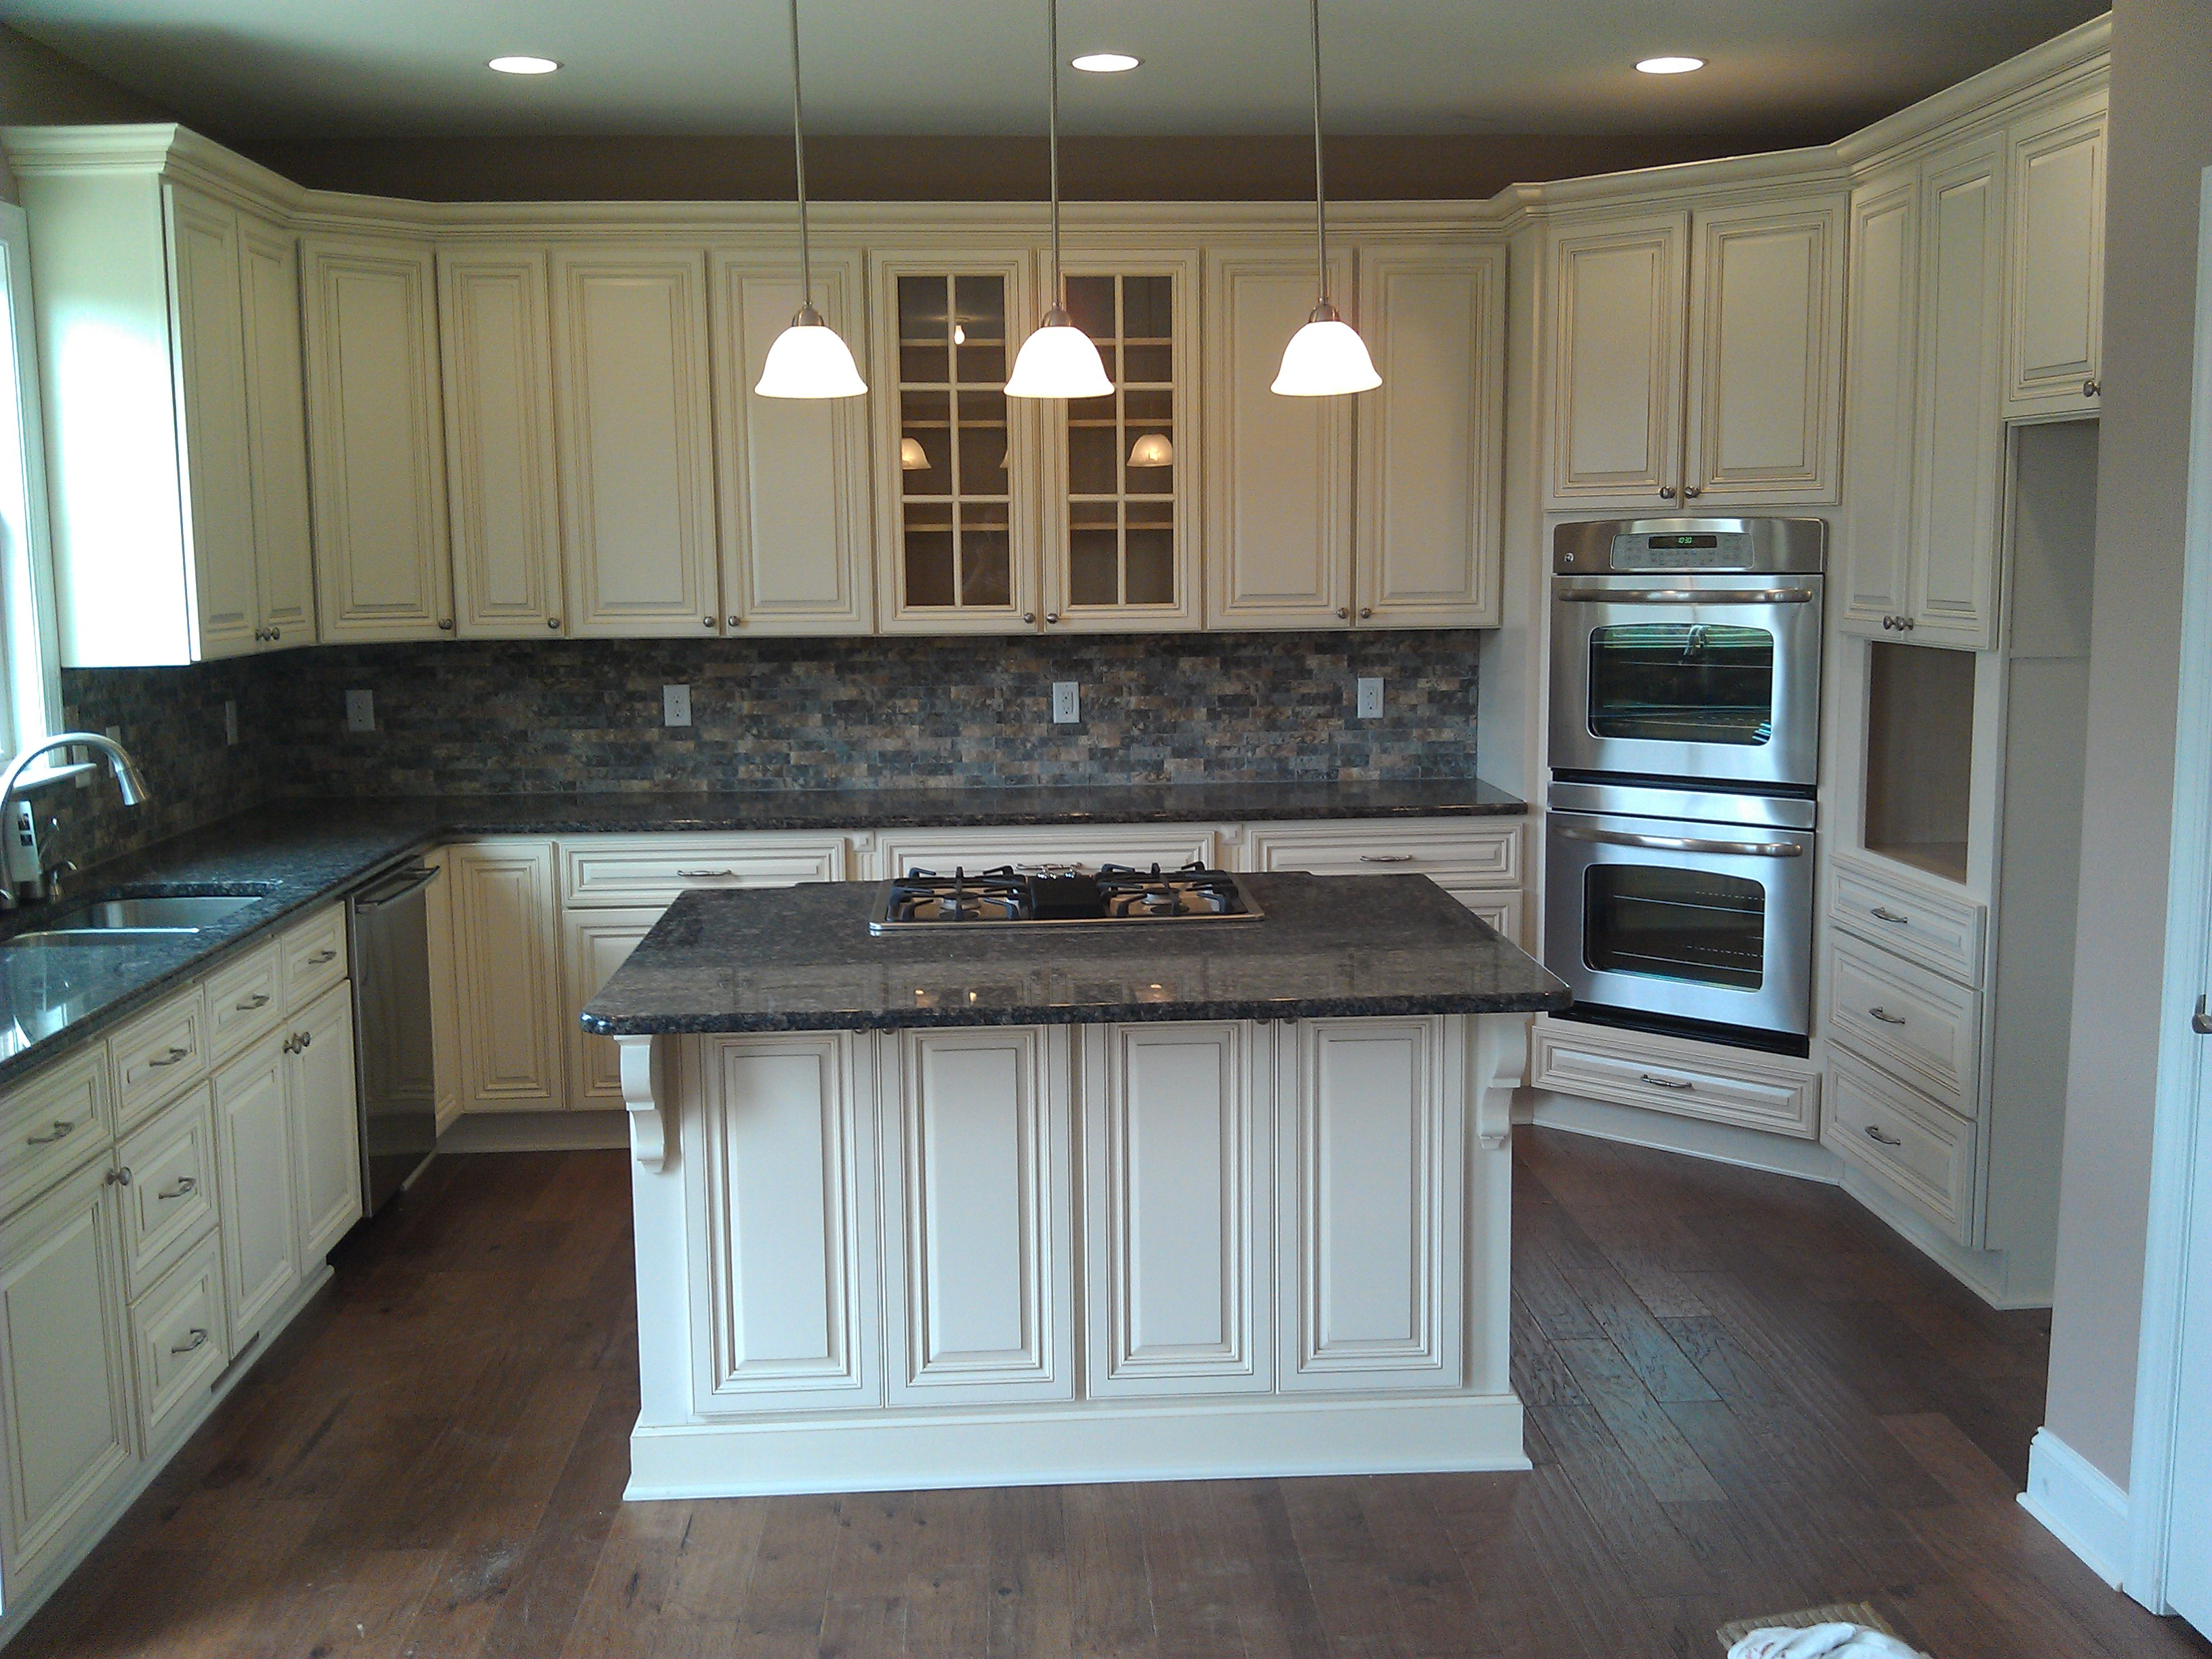 Just In Cabinets And Interiors 3625 Centre Cir Ste B Fort Mill Sc 29715 Yp